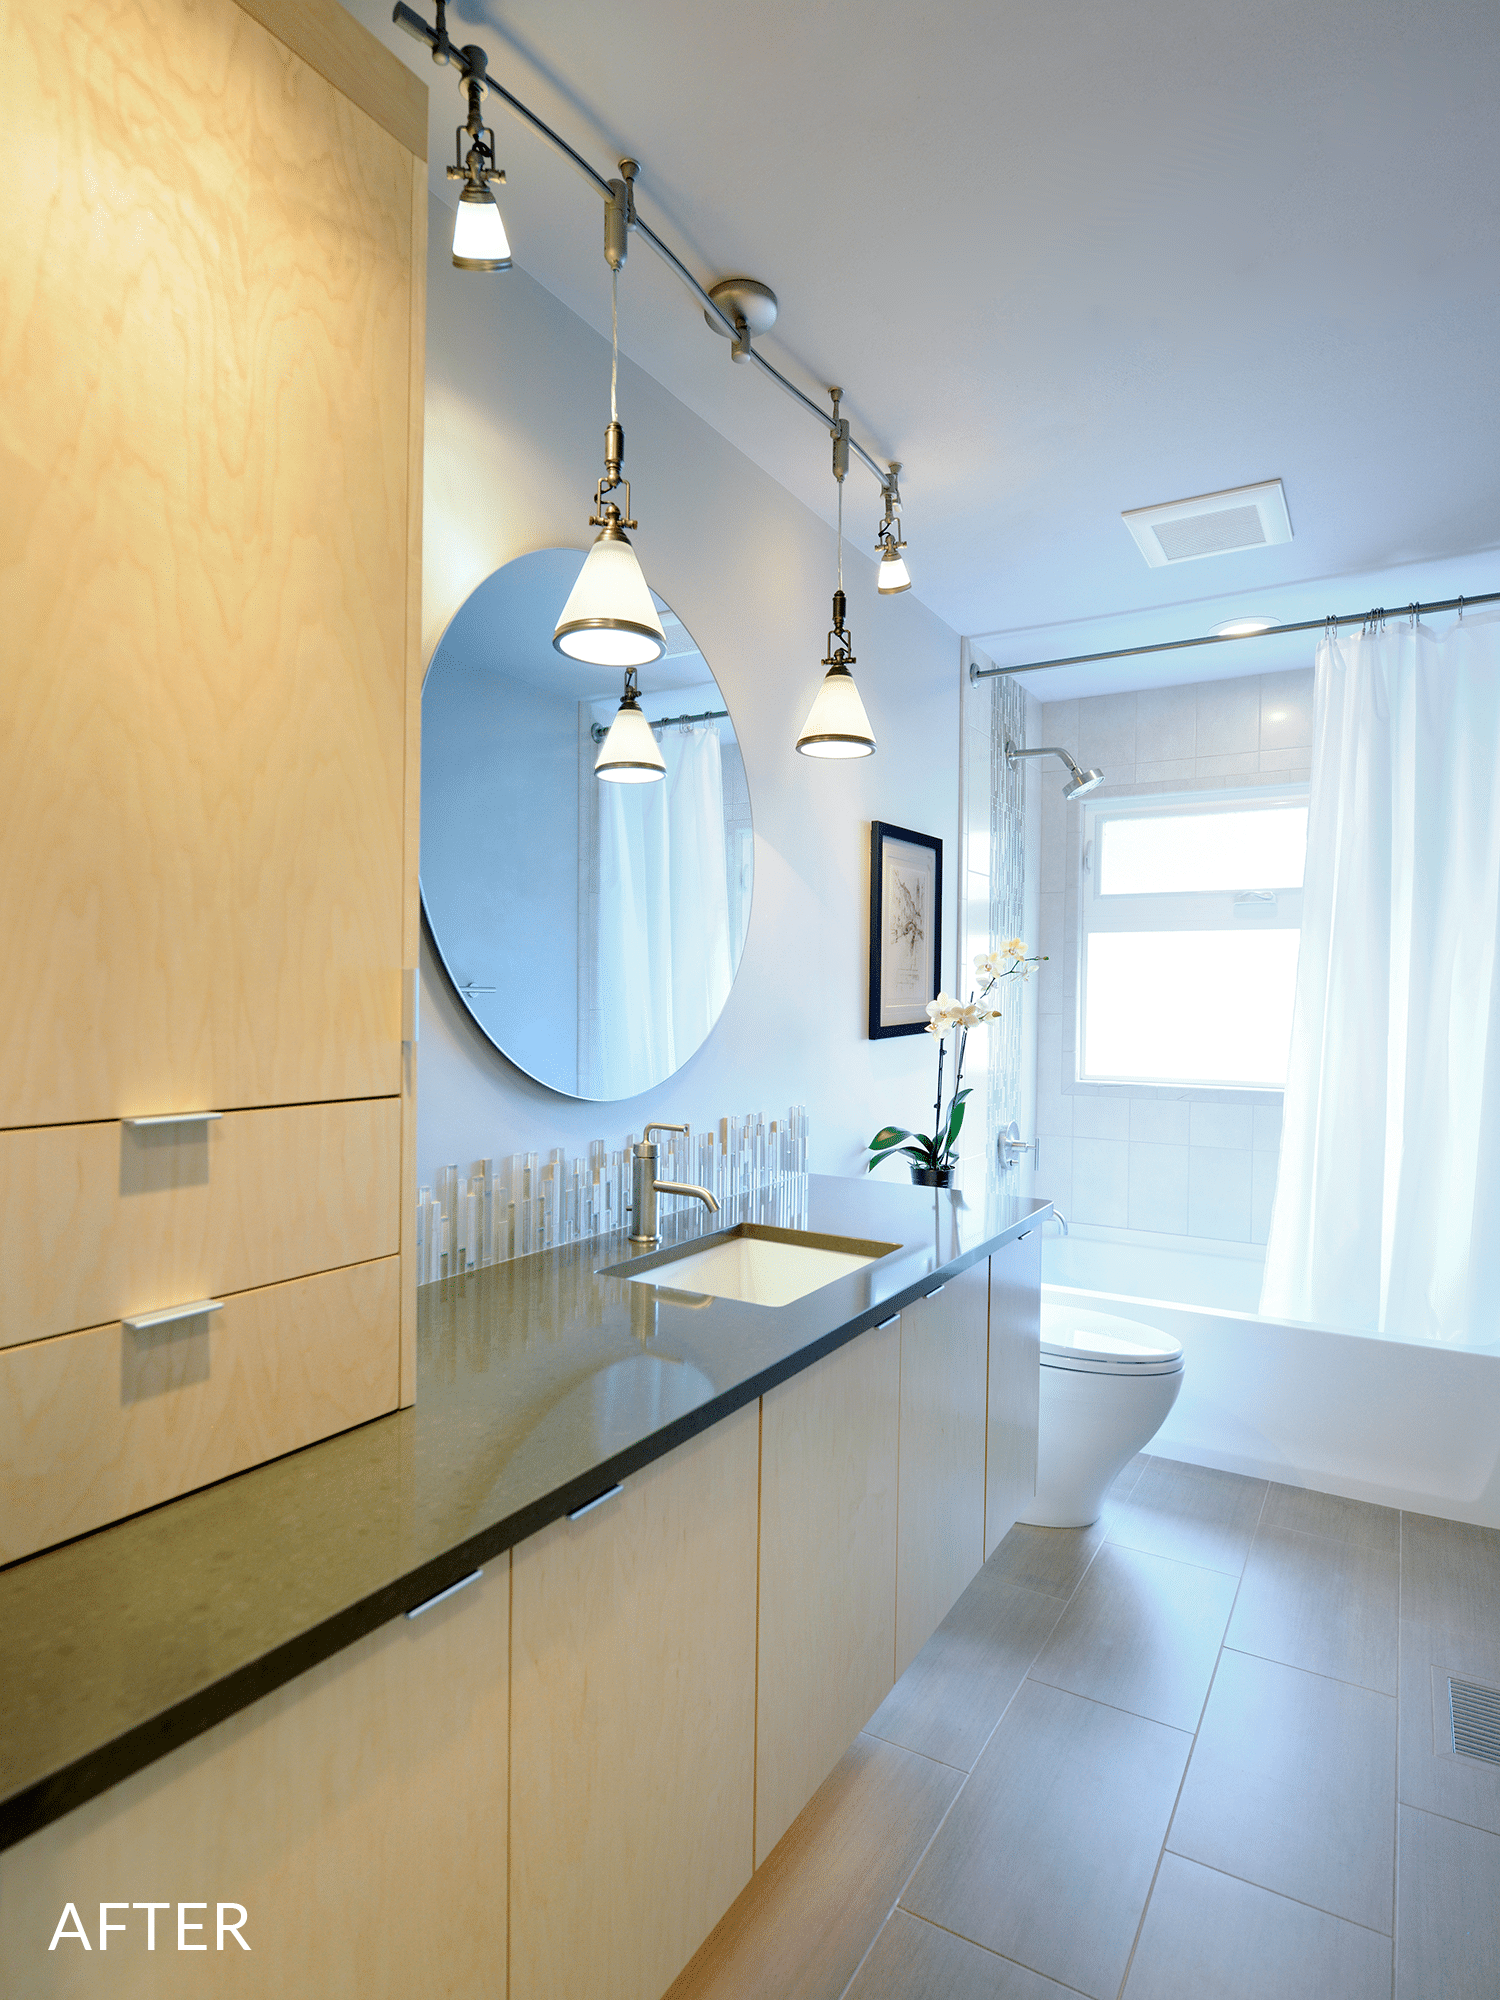 White wooden cupboard and toilet bowl